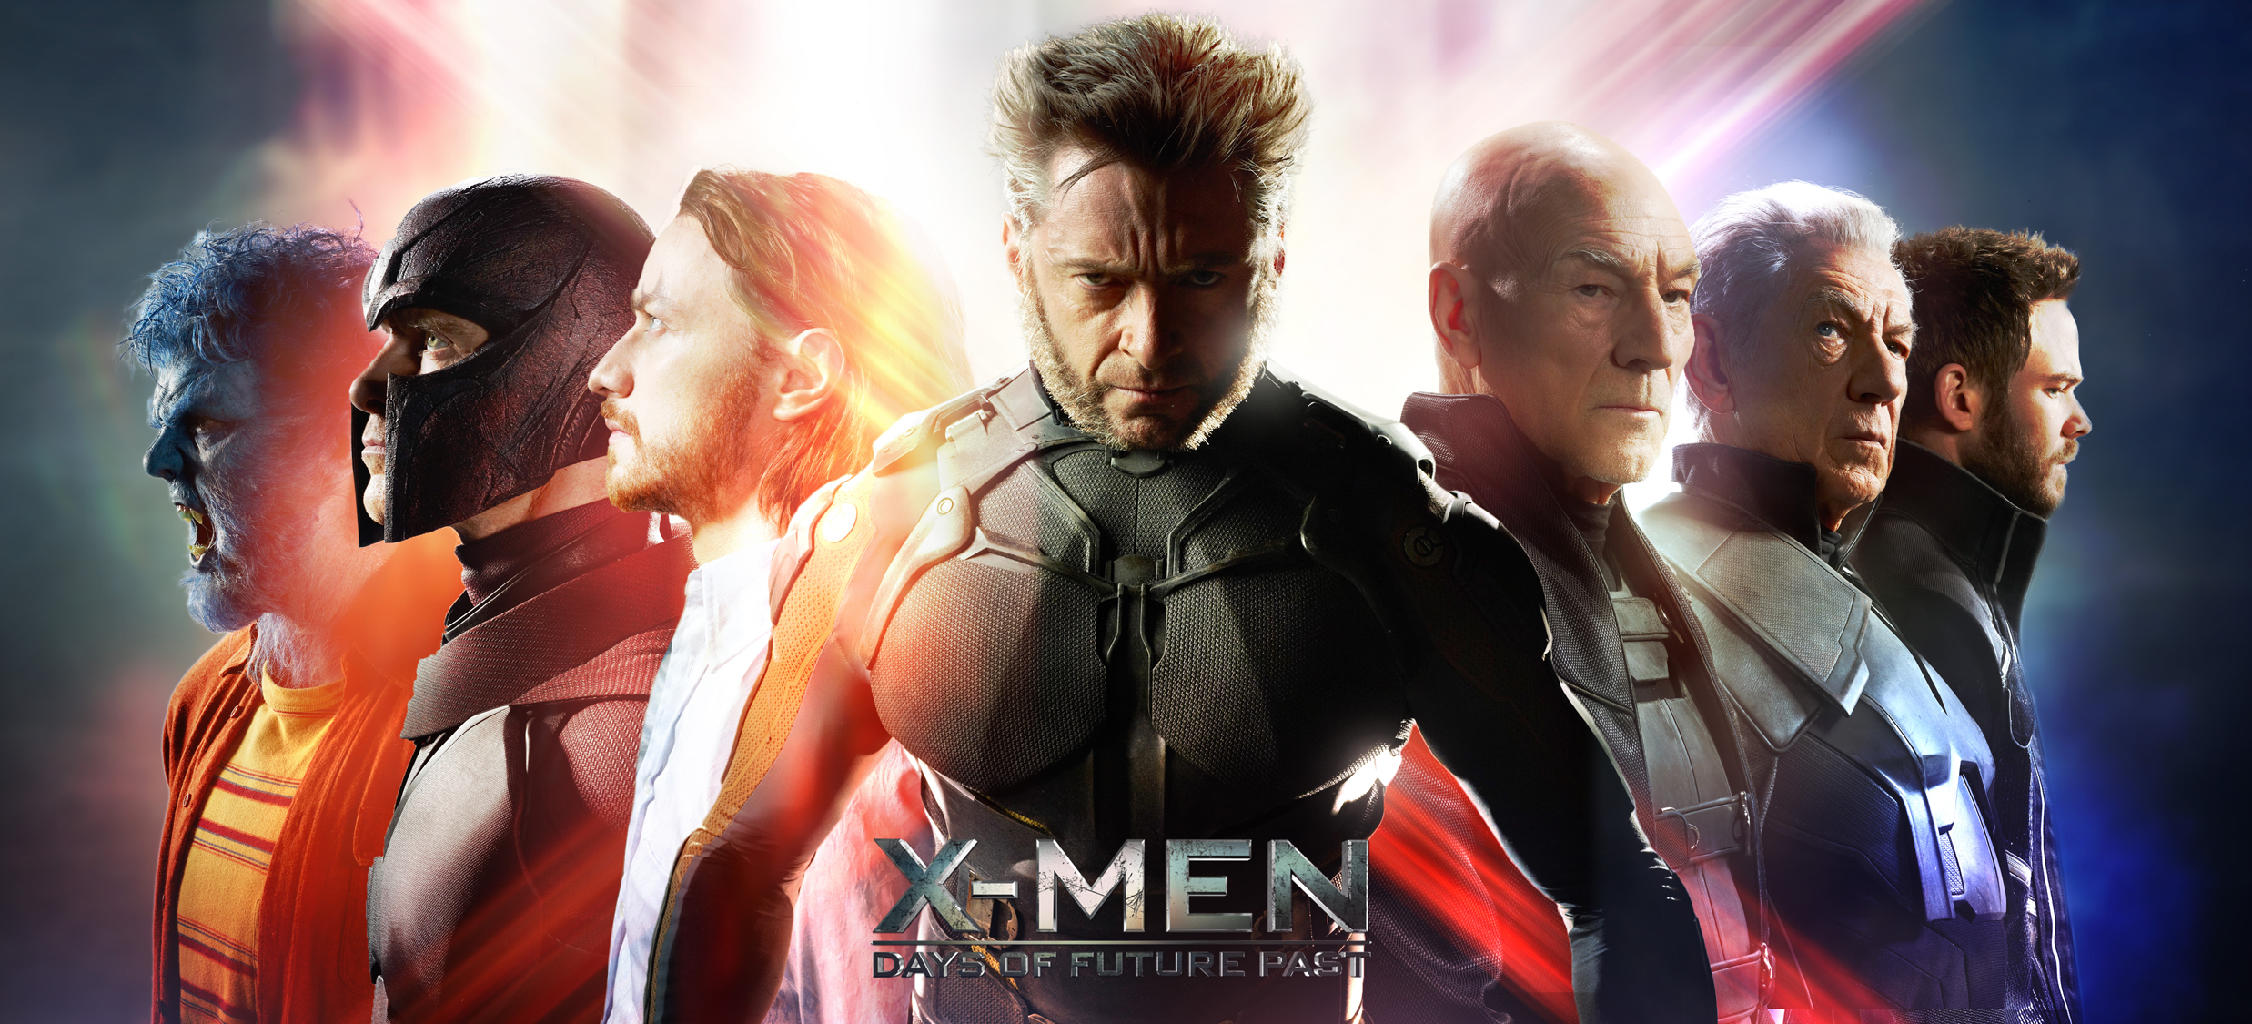 X-Men-Days-Of-Future-Past-poster-9